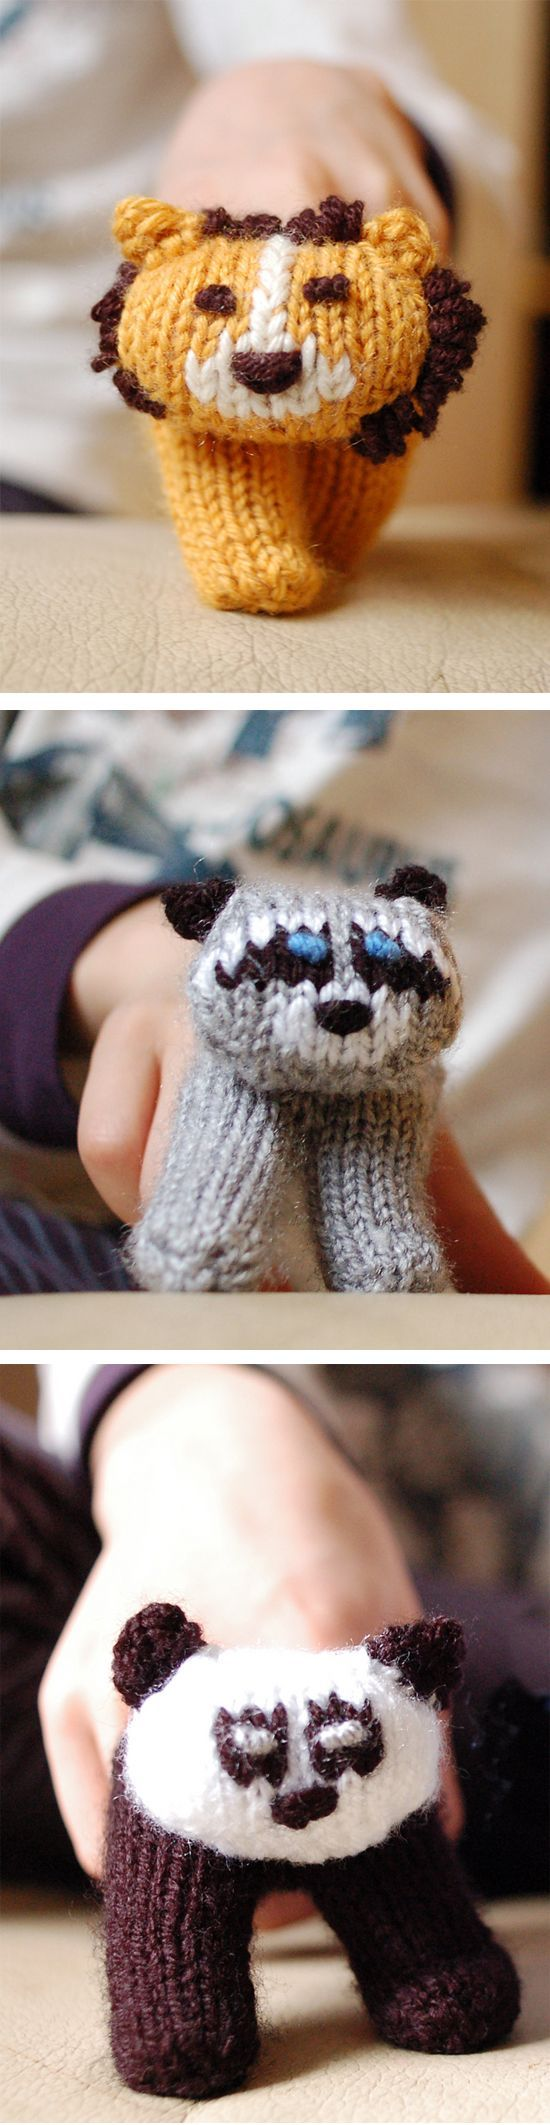 Free Knitting Pattern for Two-Finger Puppets - Let your fingers do ...